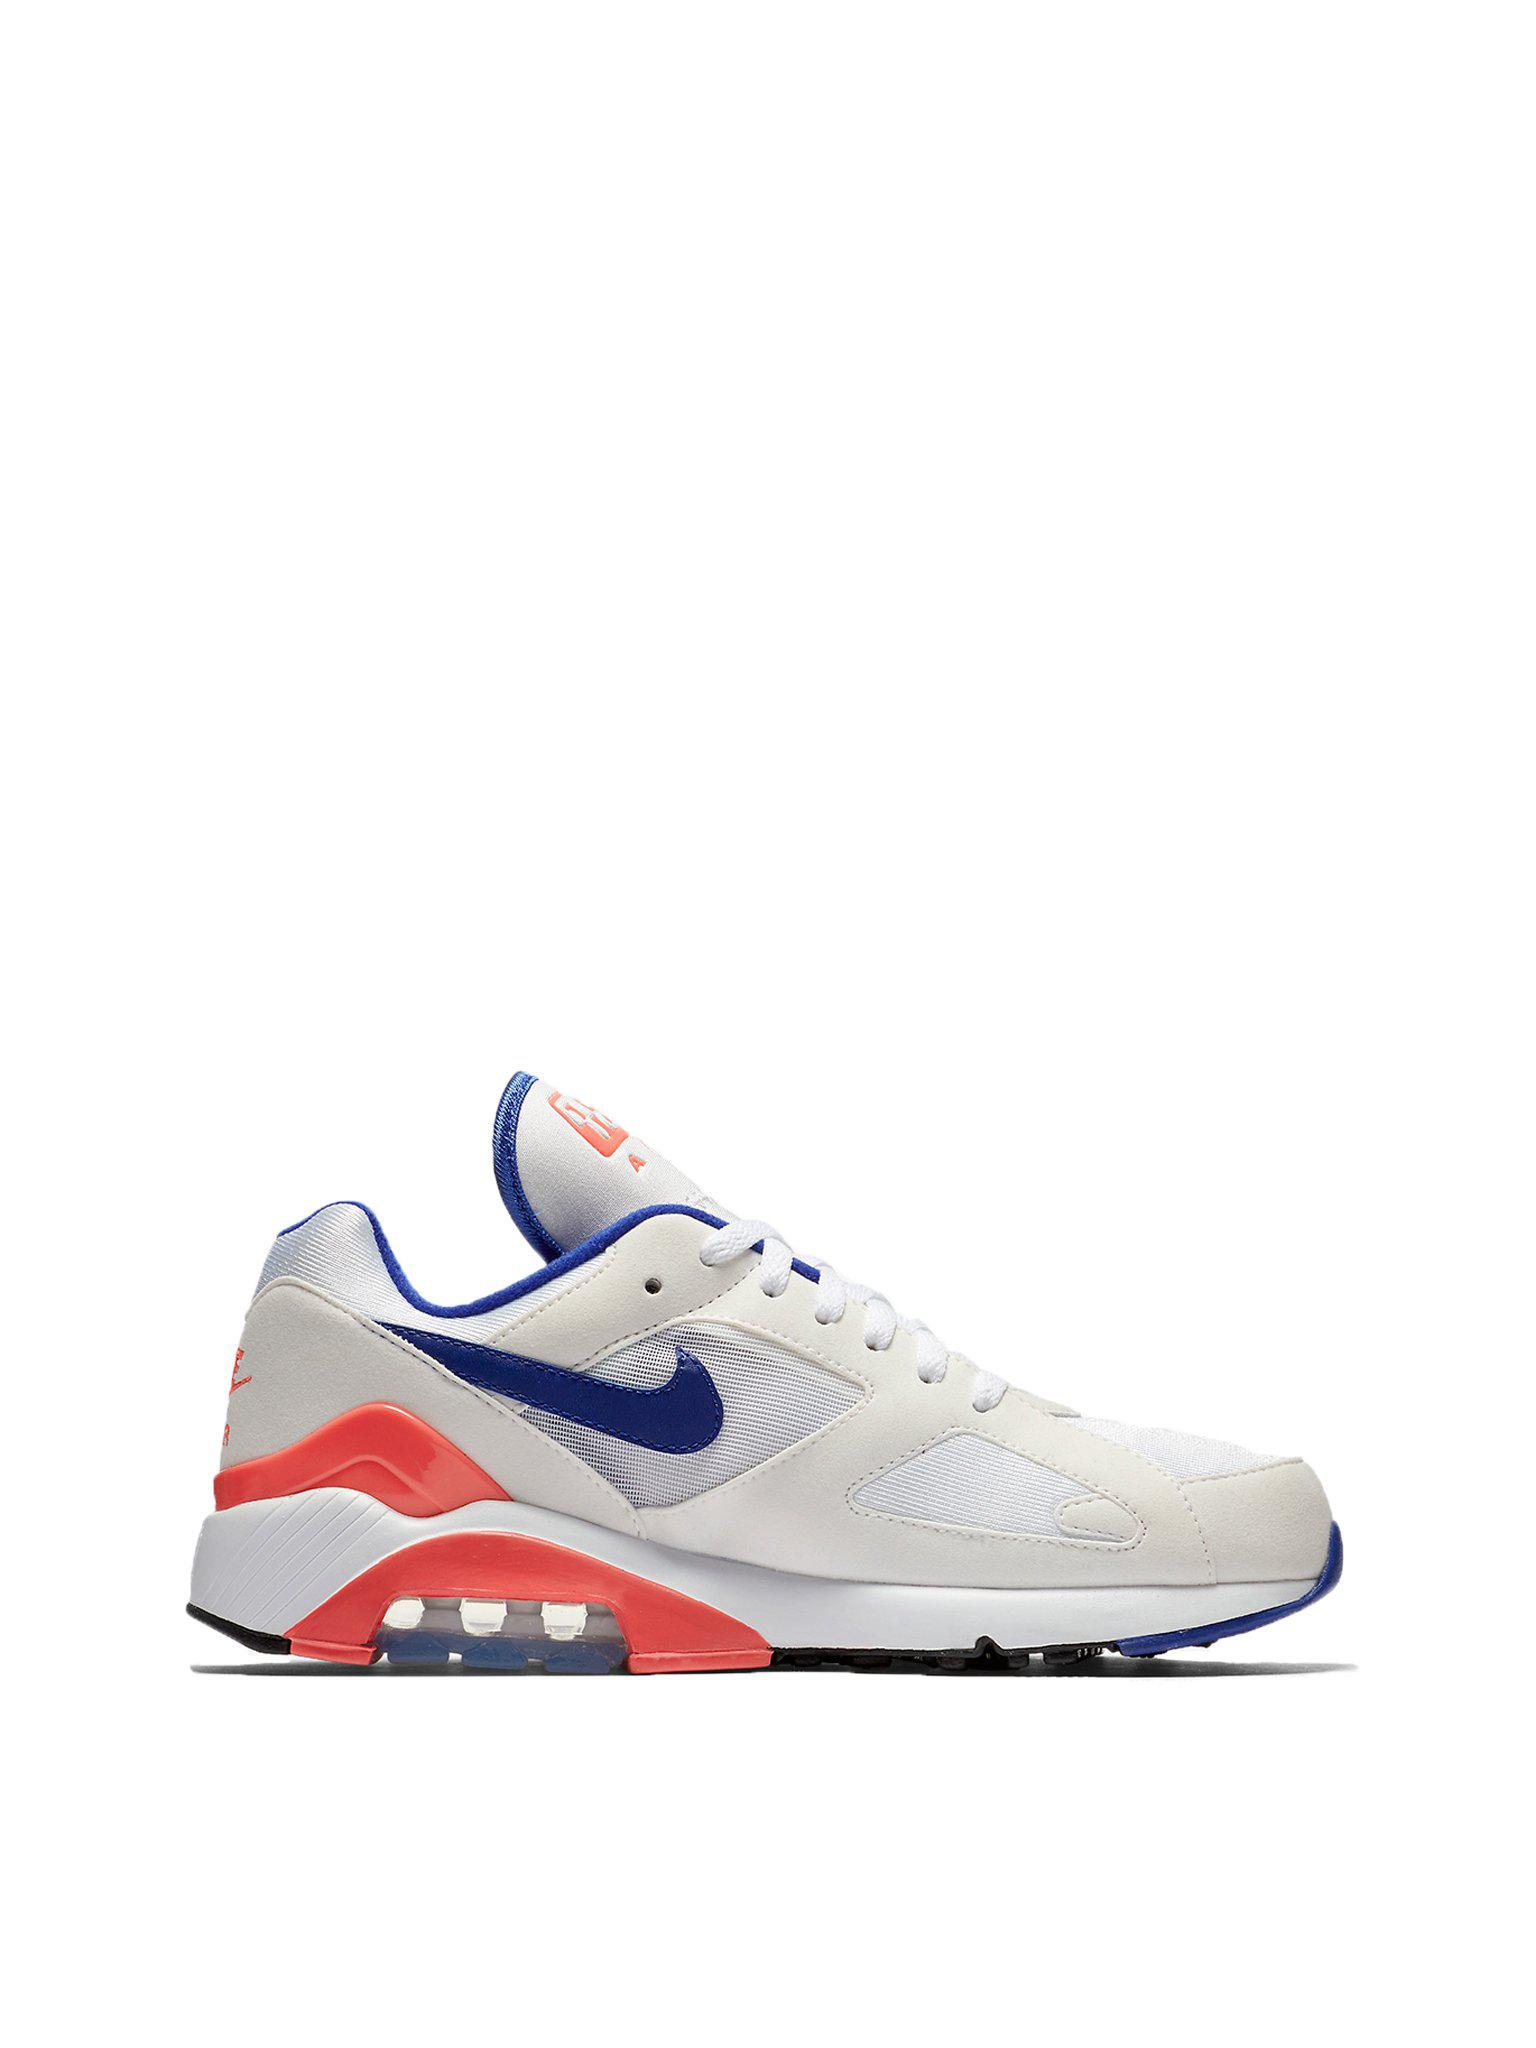 7748c21a5922 Lyst - Nike Air Max 180 in White for Men